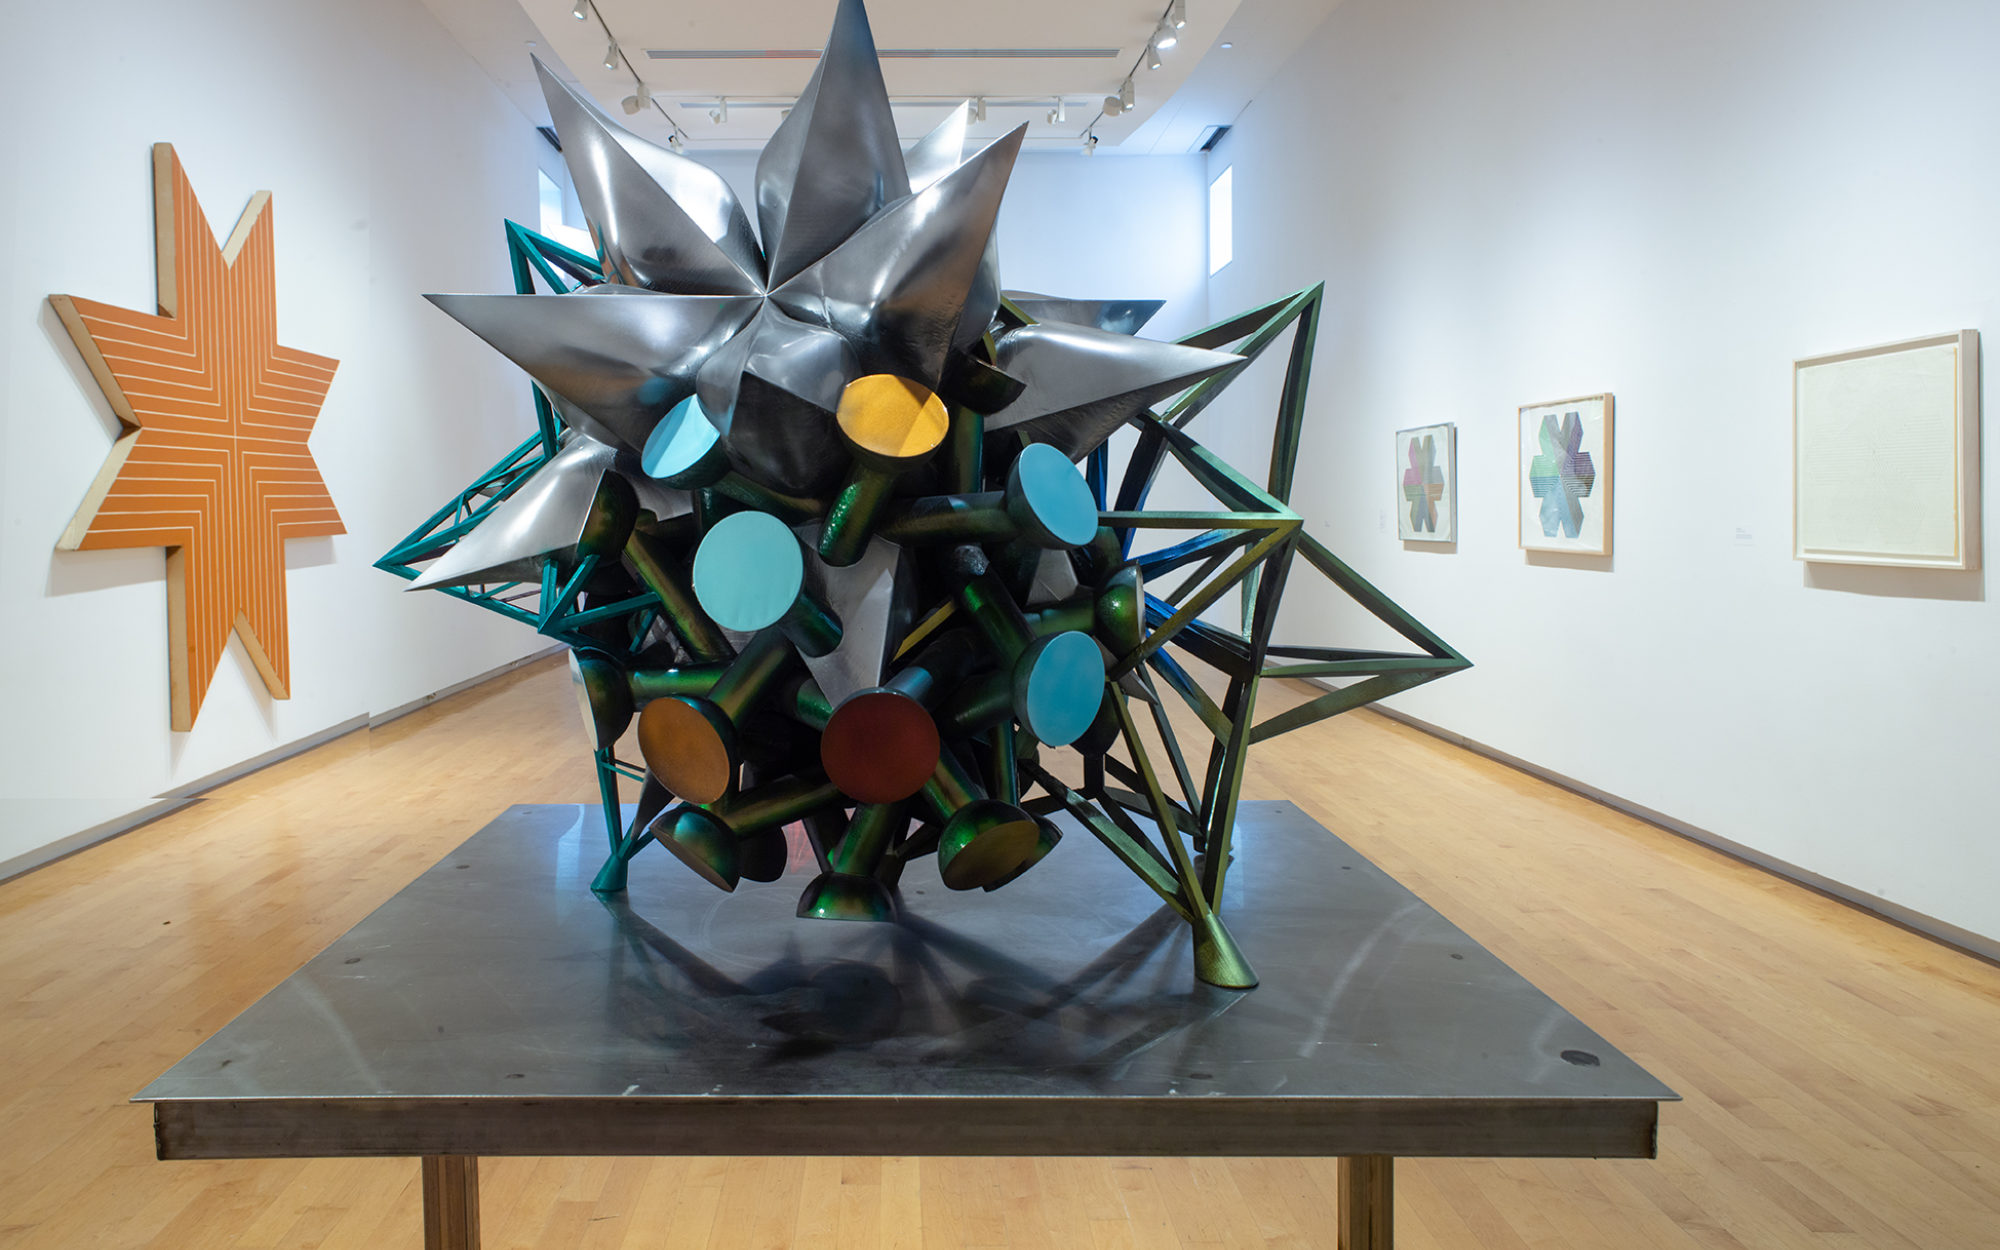 Frank Stella's Stars, A Survey, The Aldrich Contemporary Art Museum, September 21, 2020 to May 9, 2021, K.159, 2013 (installation view).